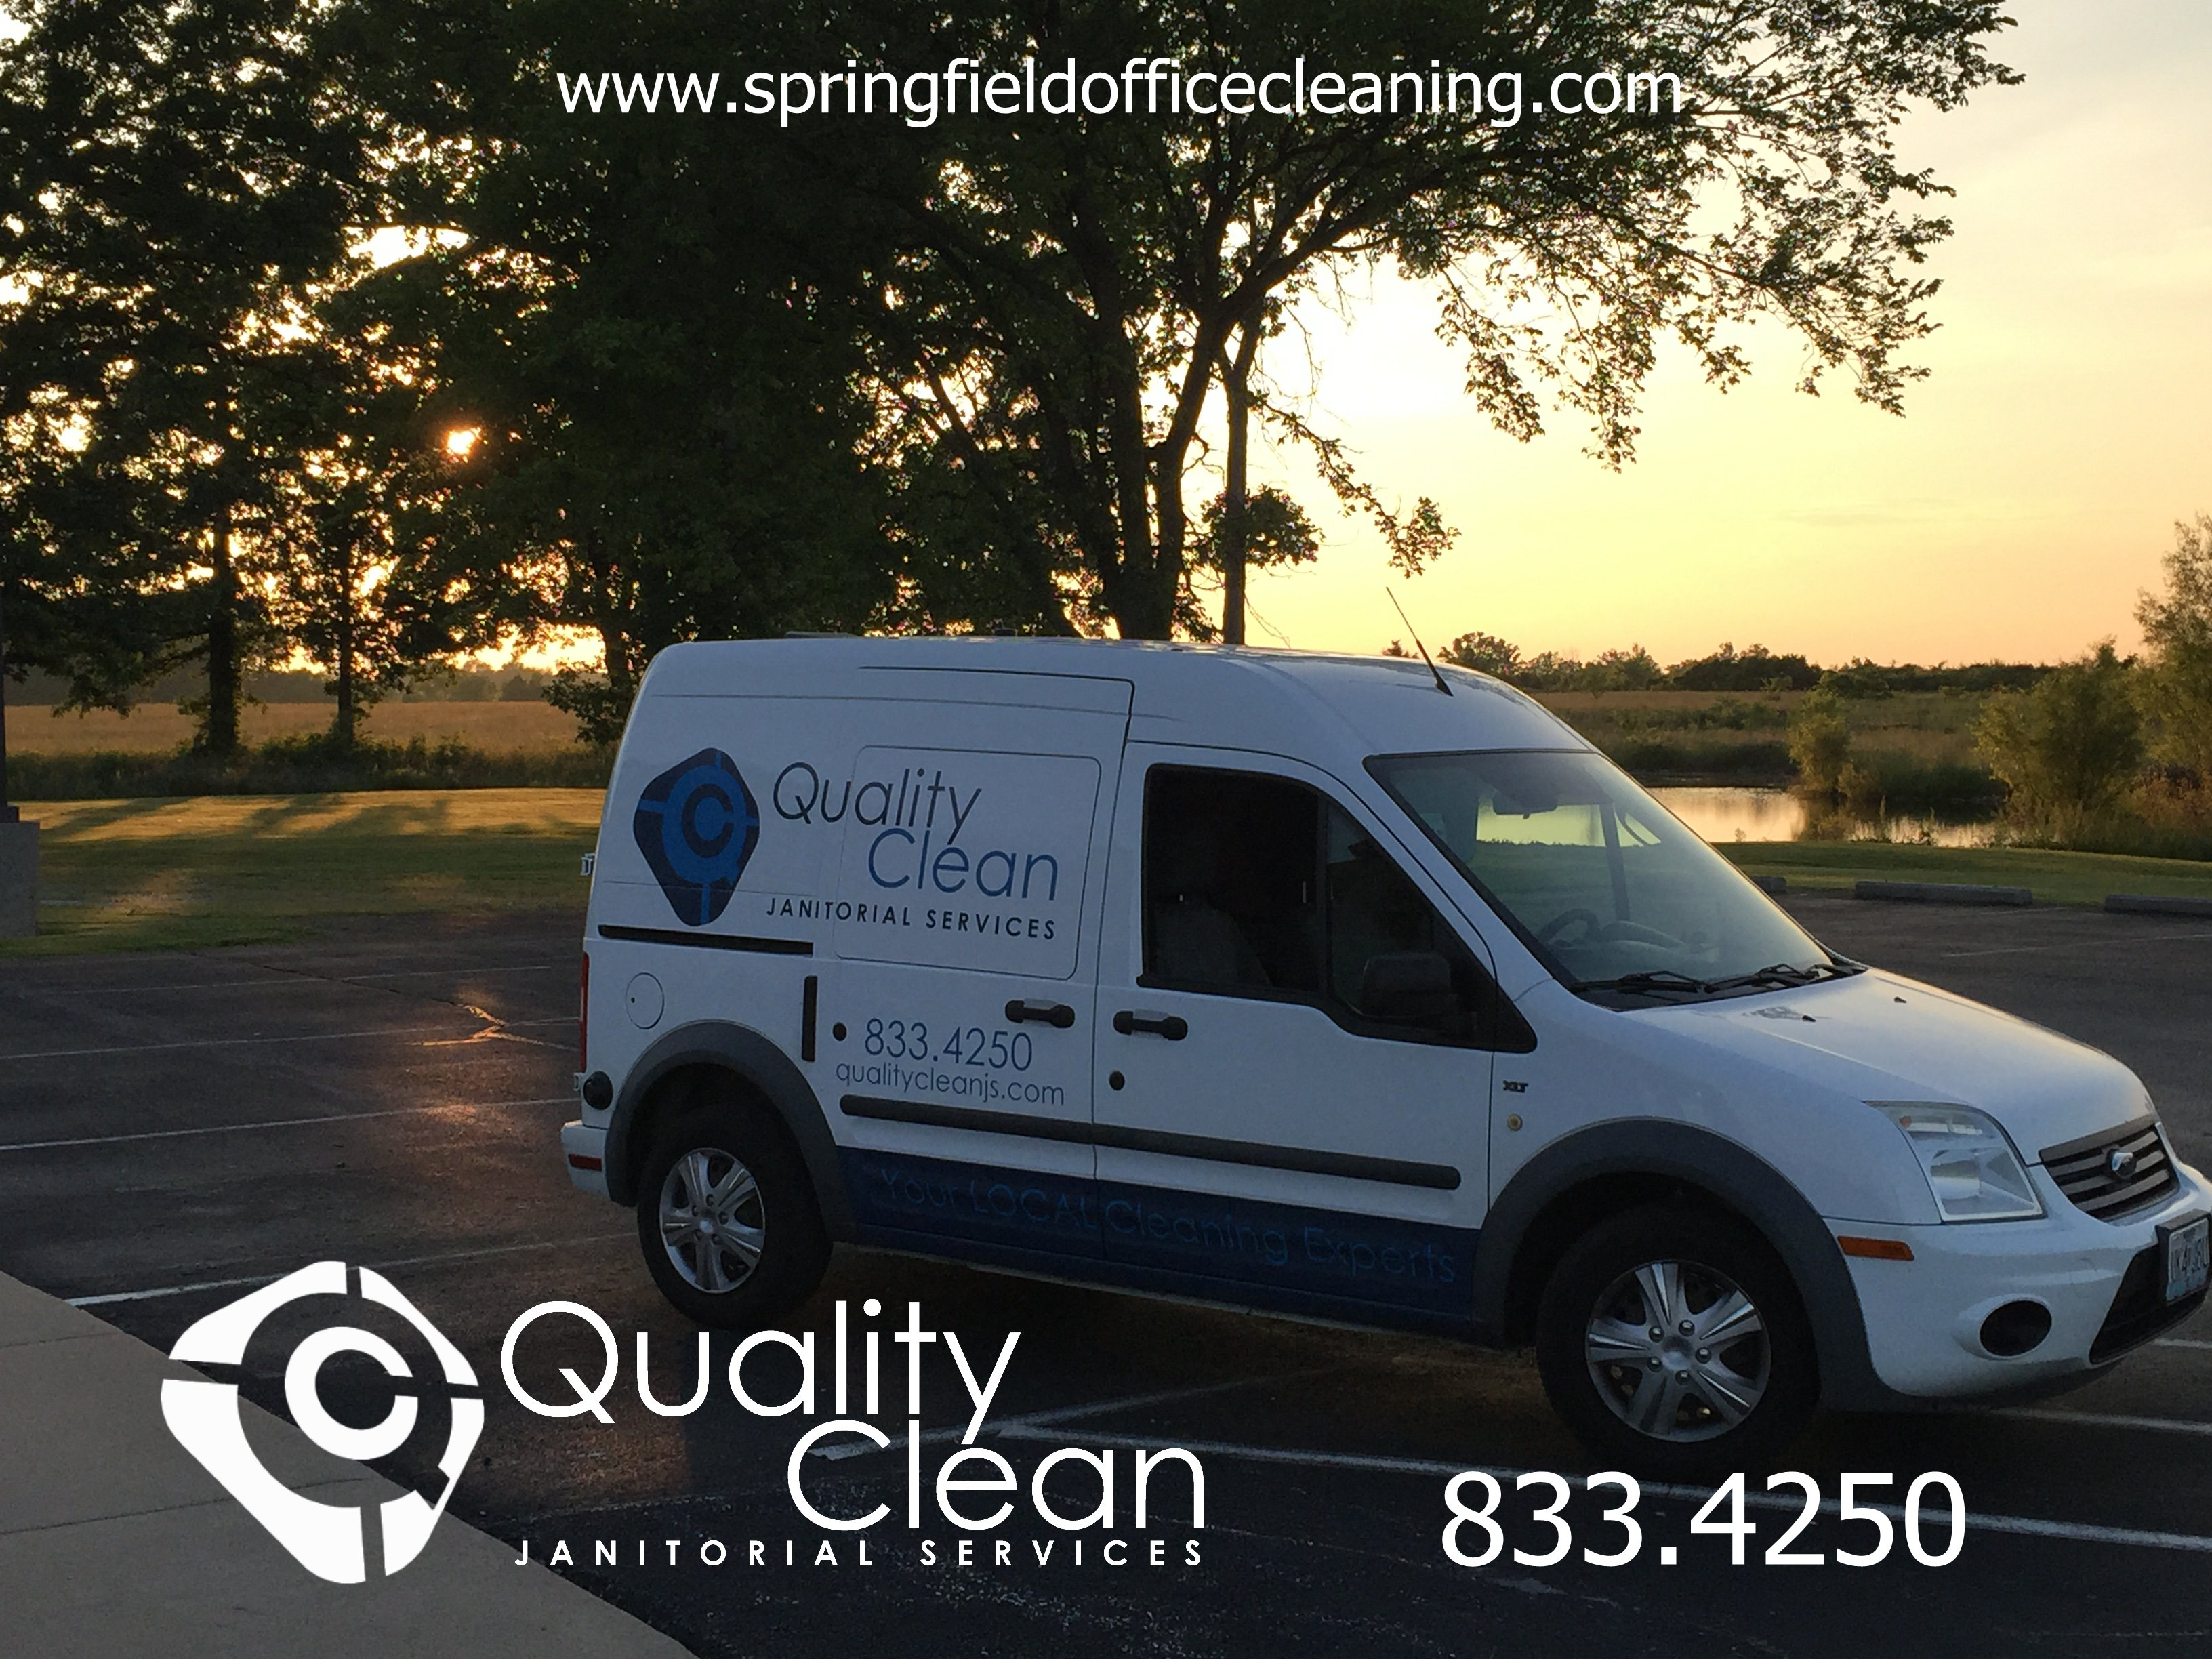 Quality Clean Janitorial Services image 2